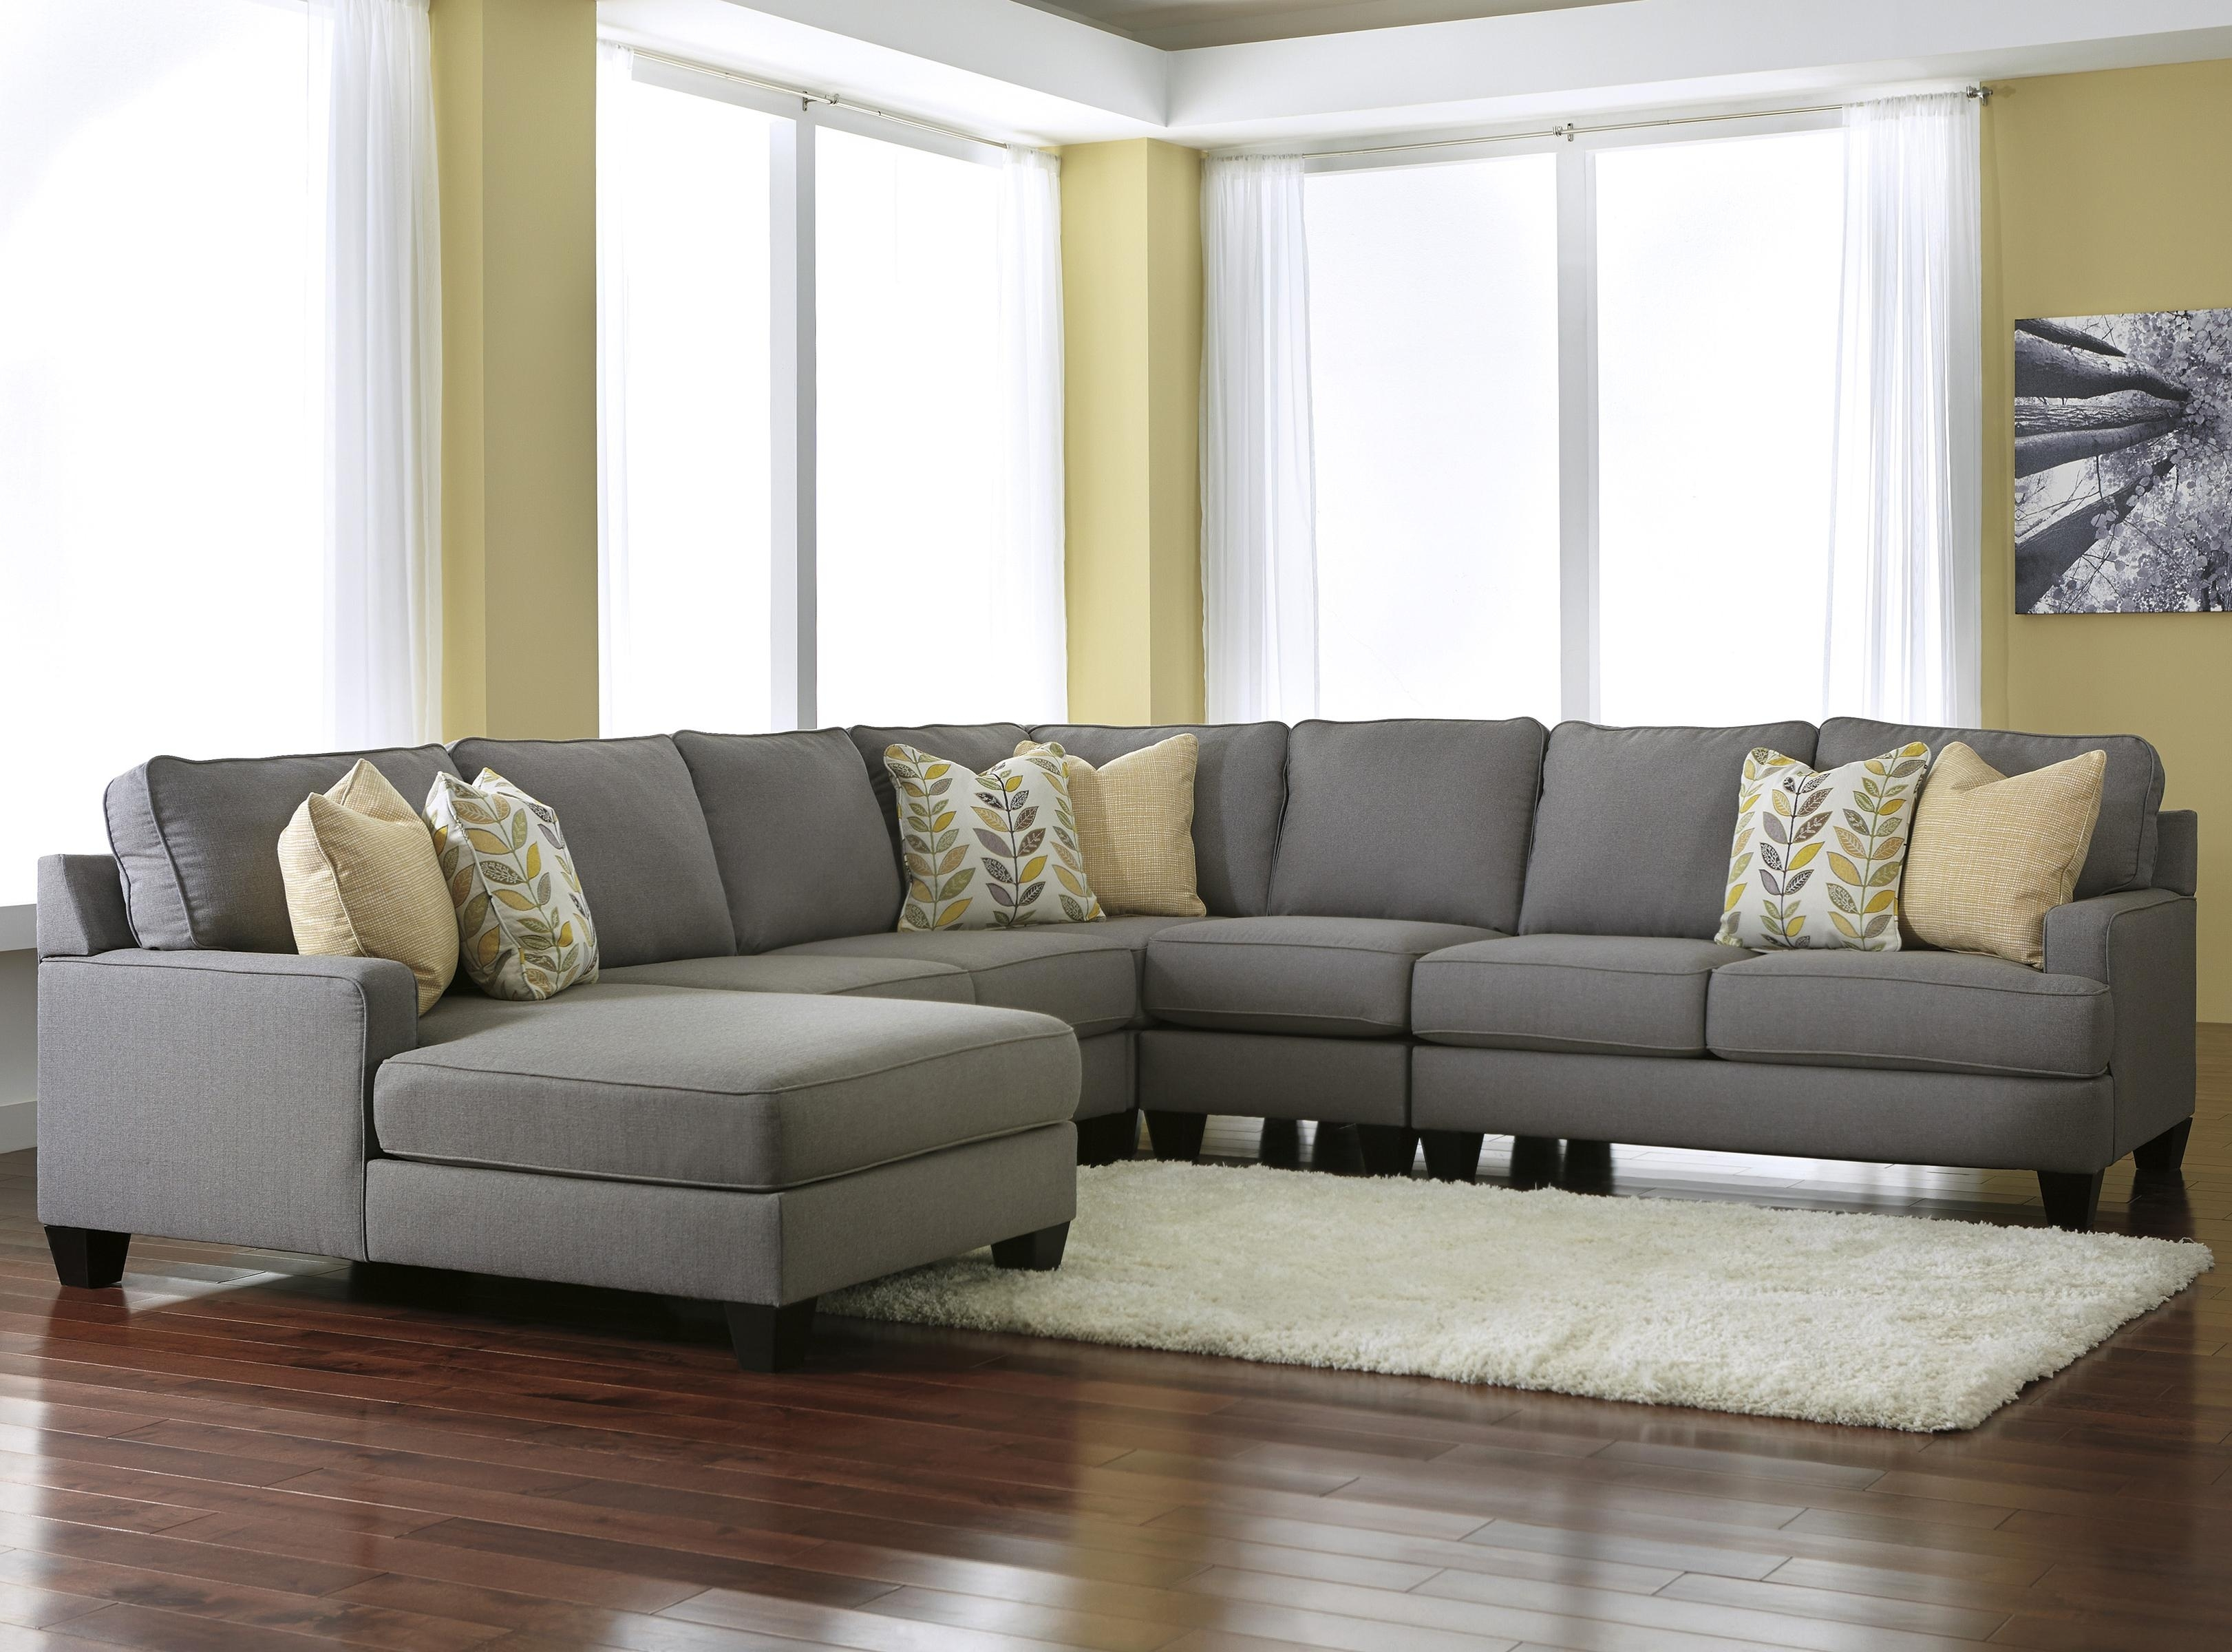 Signature Designashley Chamberly – Alloy Modern 5 Piece Regarding St Cloud Mn Sectional Sofas (View 8 of 10)